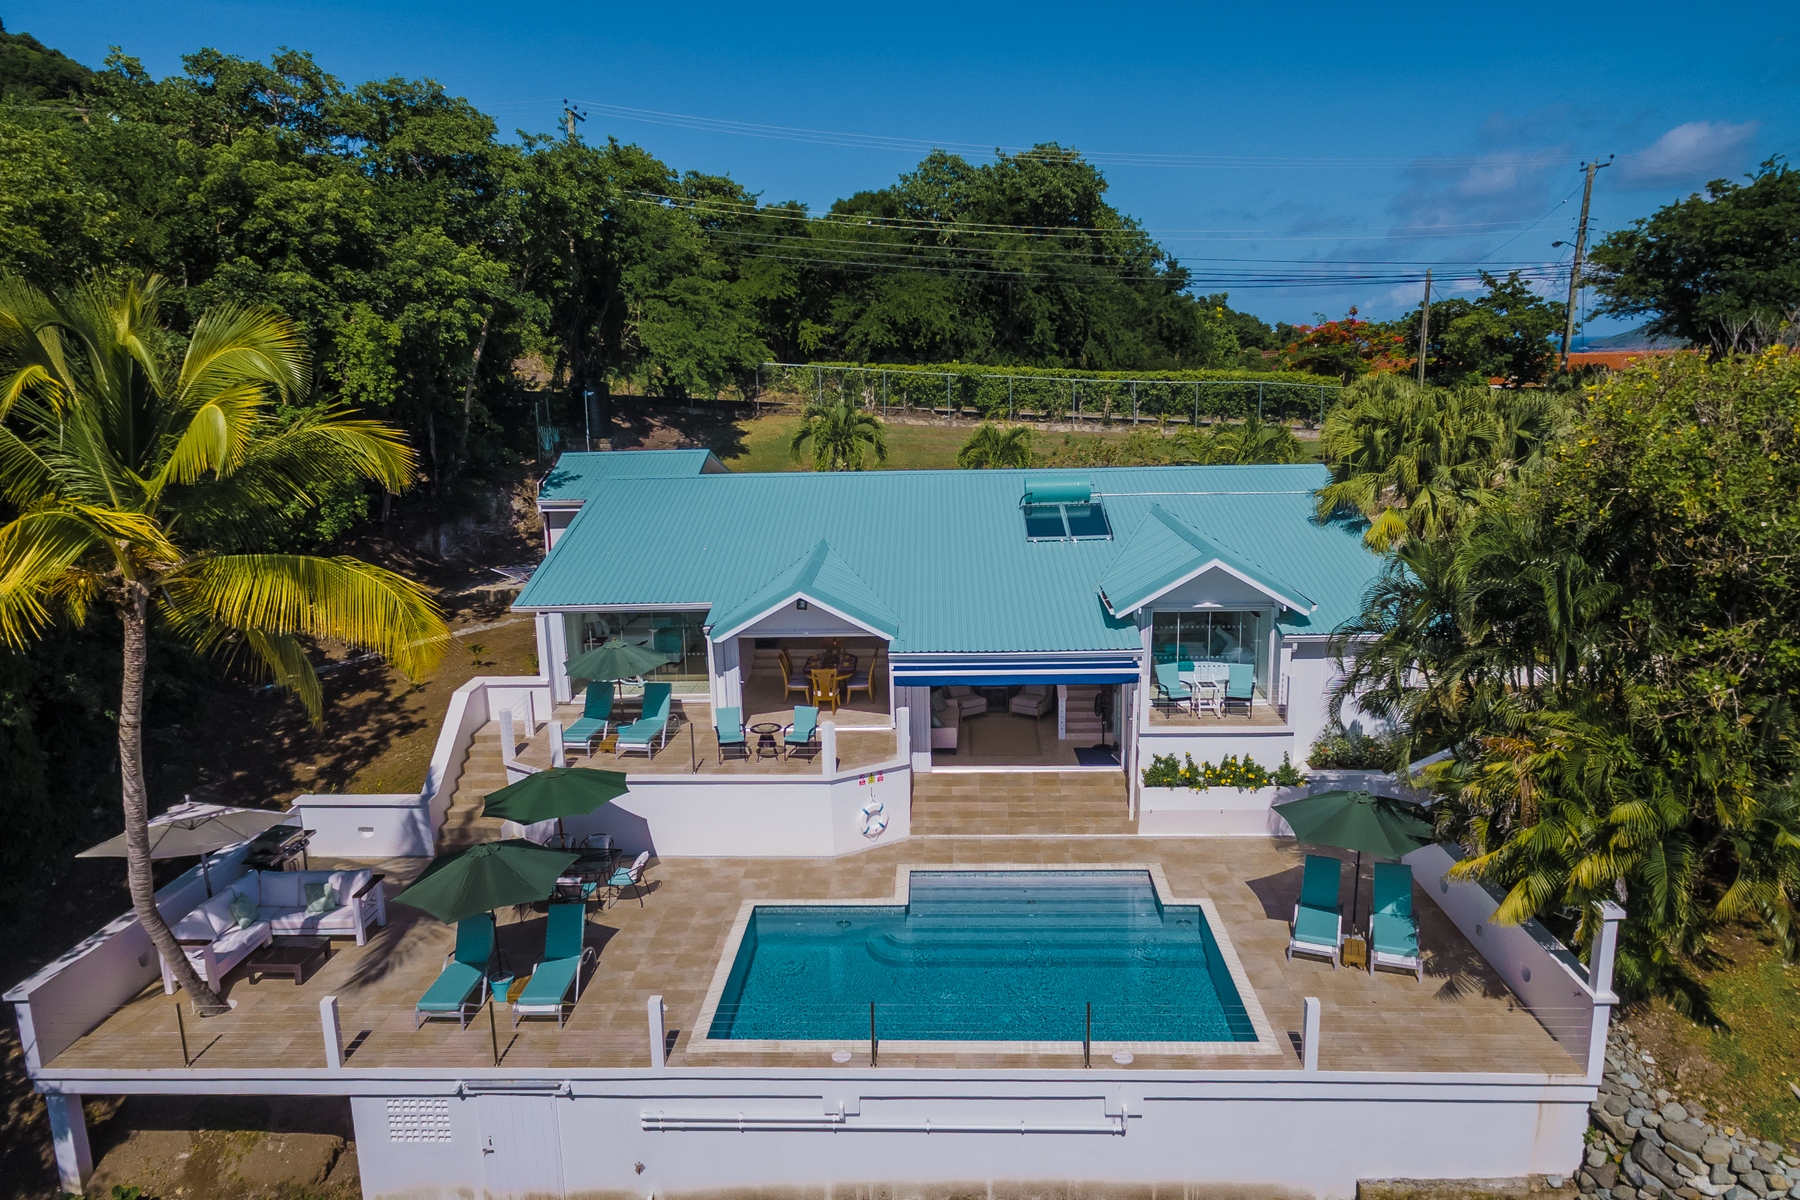 Single Family Homes for Sale at Deluxe 4 Bedroom Ocean View Villa with Guest House Gros Islet, Gros-Islet St. Lucia